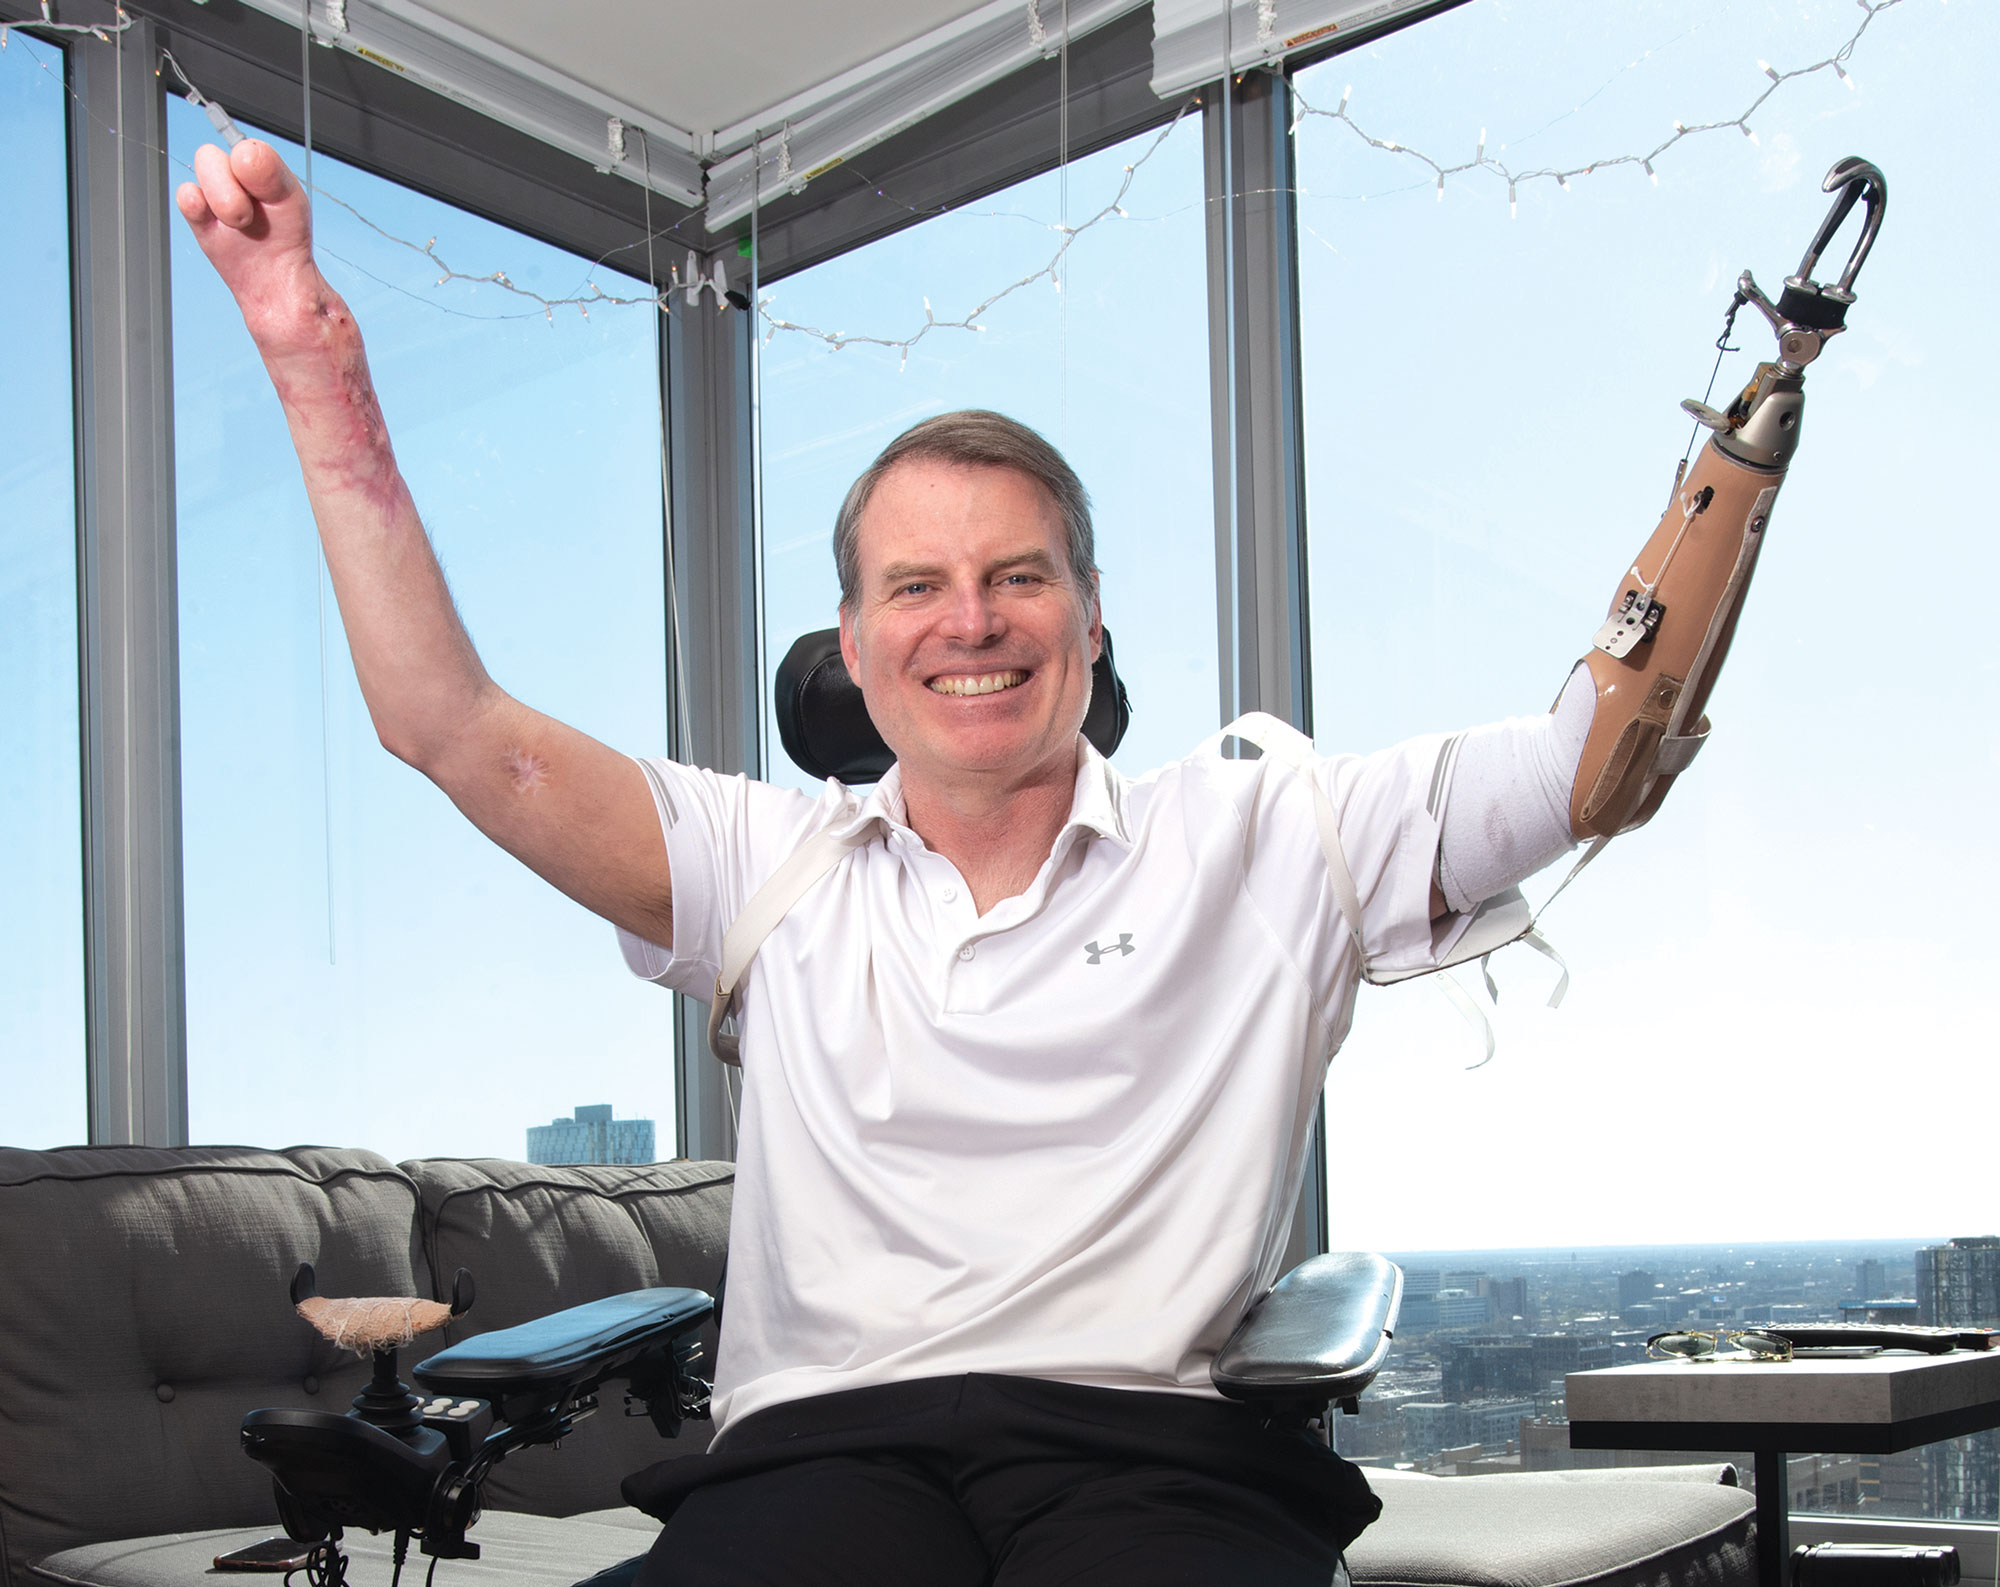 Marty Hartigan triumphantly raising his hands over his head in front of large window